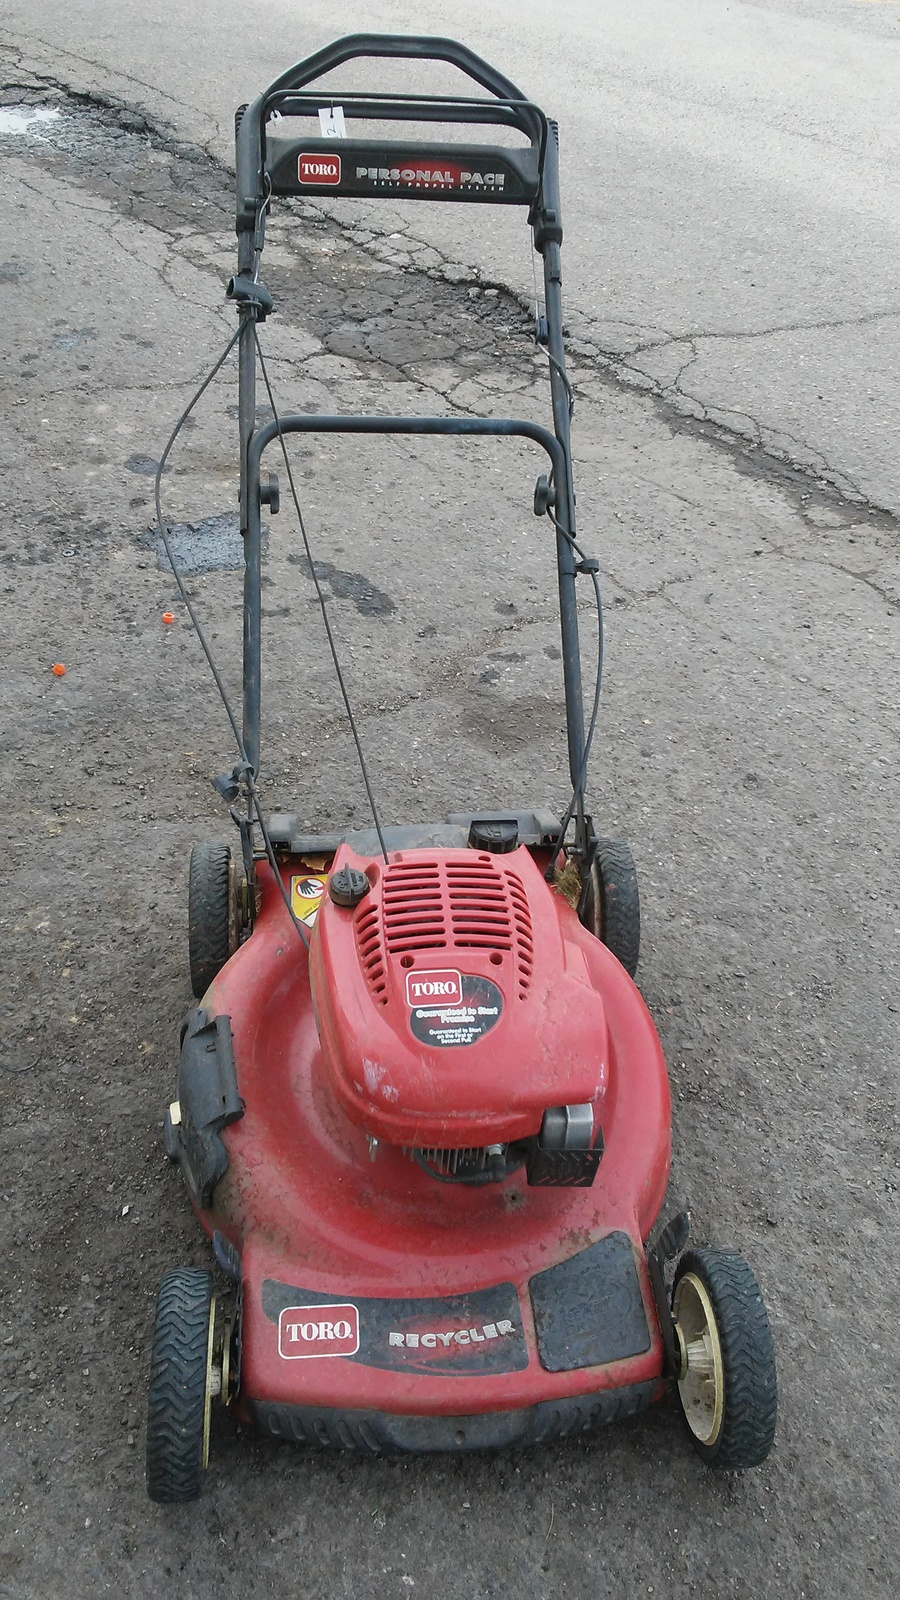 Replaces Toro Lawn Mower Model 20017 and 42 similar items